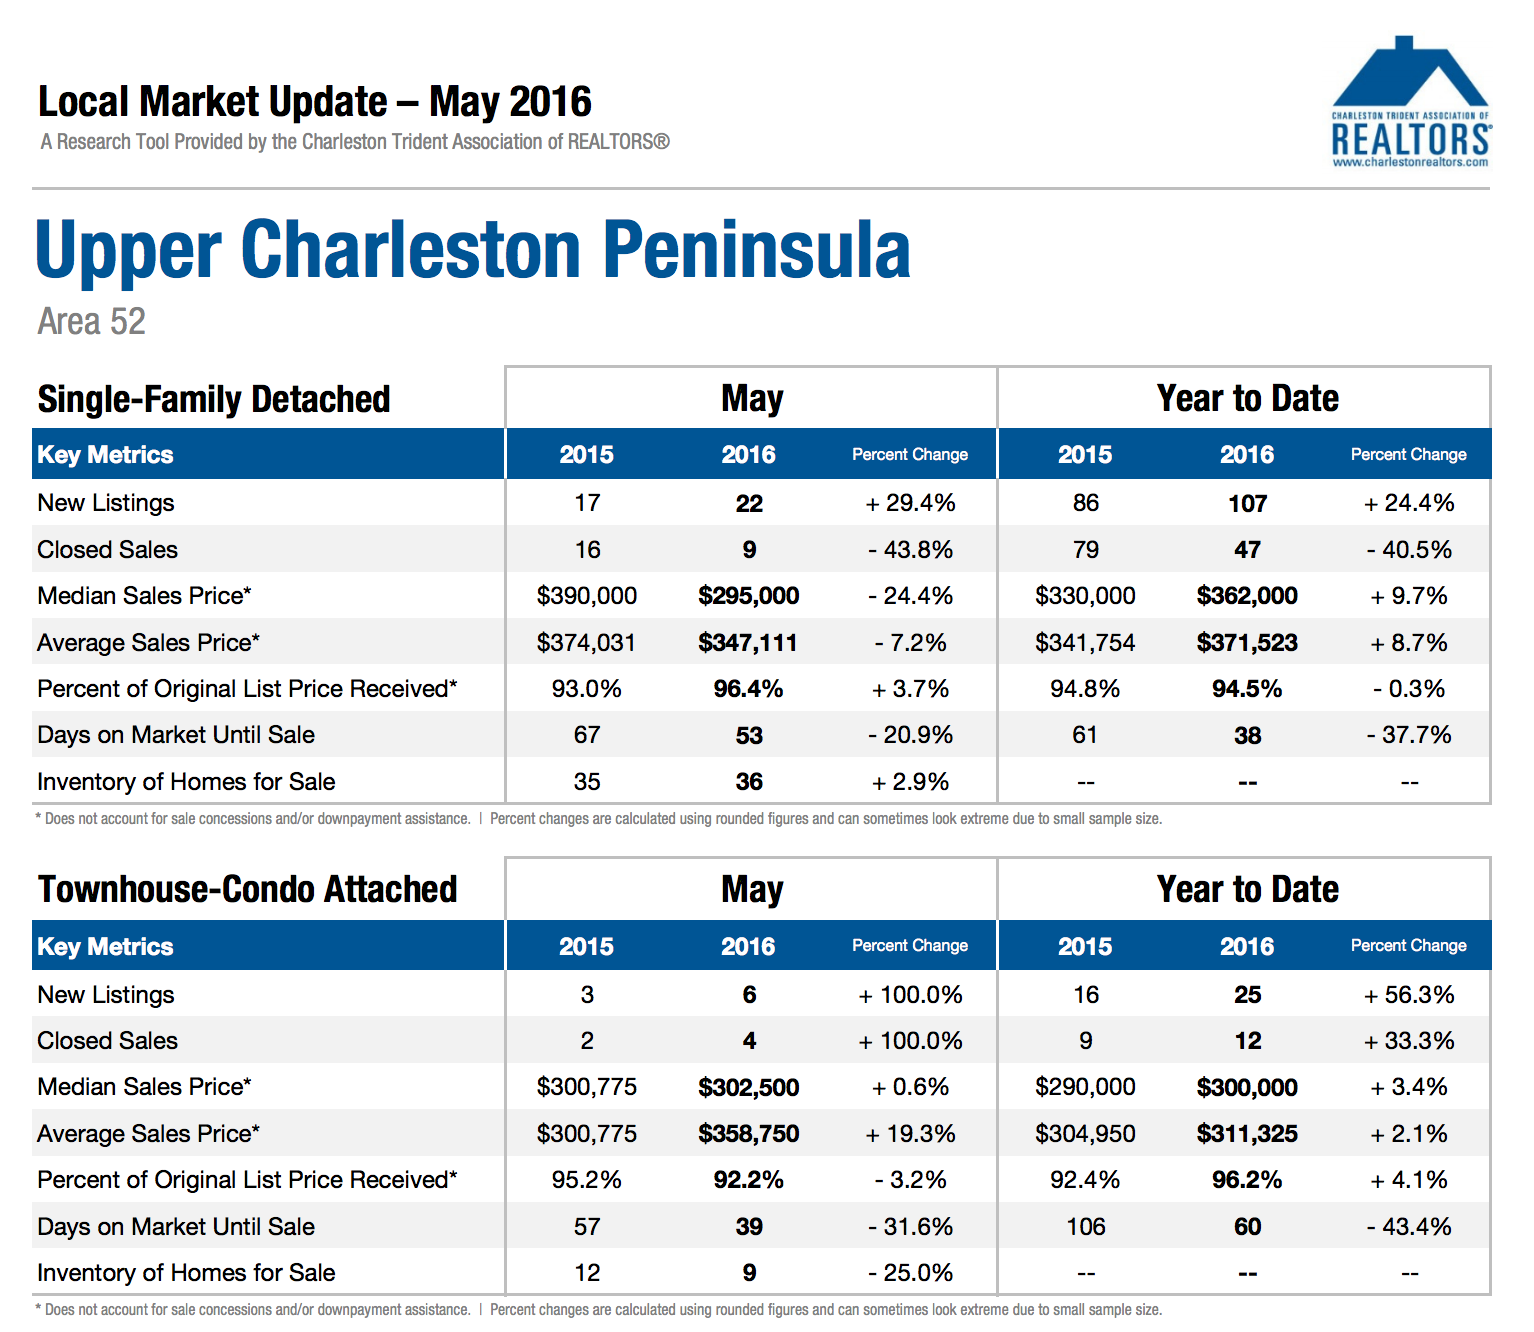 Charleston Area 52 Market Update